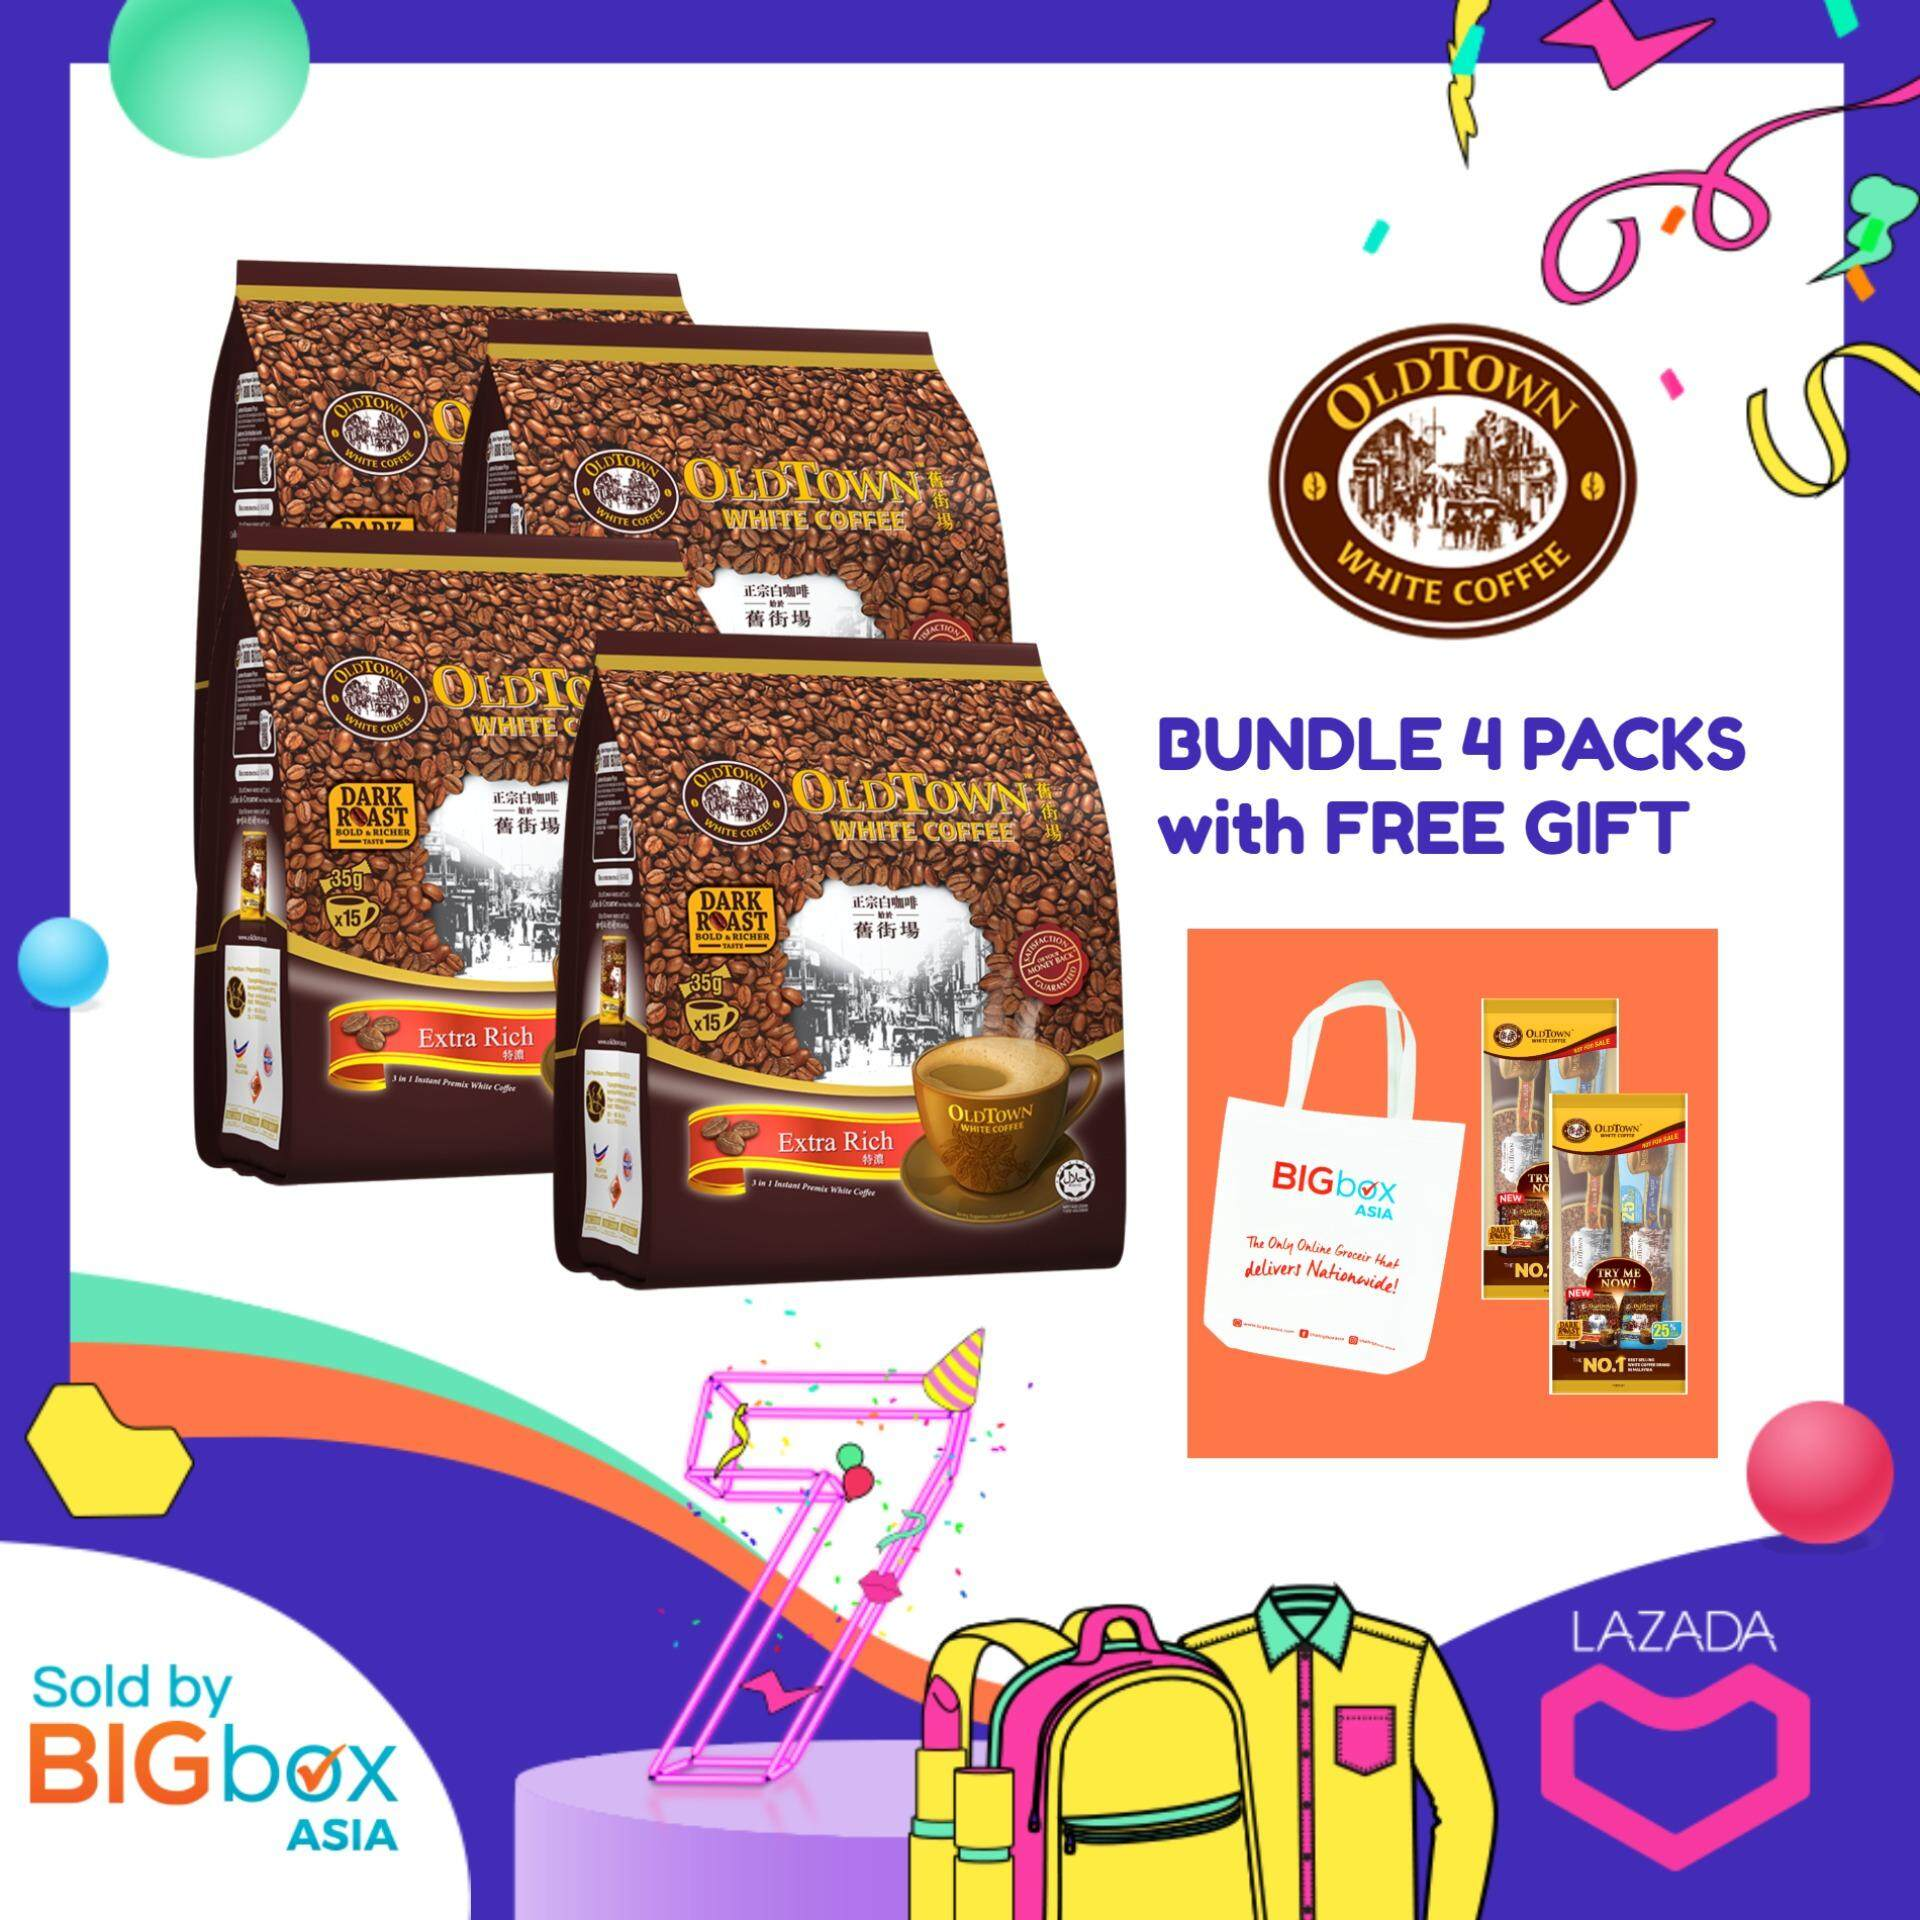 Oldtown White Coffee 3in1 Extra Rich 35g X 15sticks [bundle Of 4 With Free Gift] By Bigbox Asia.